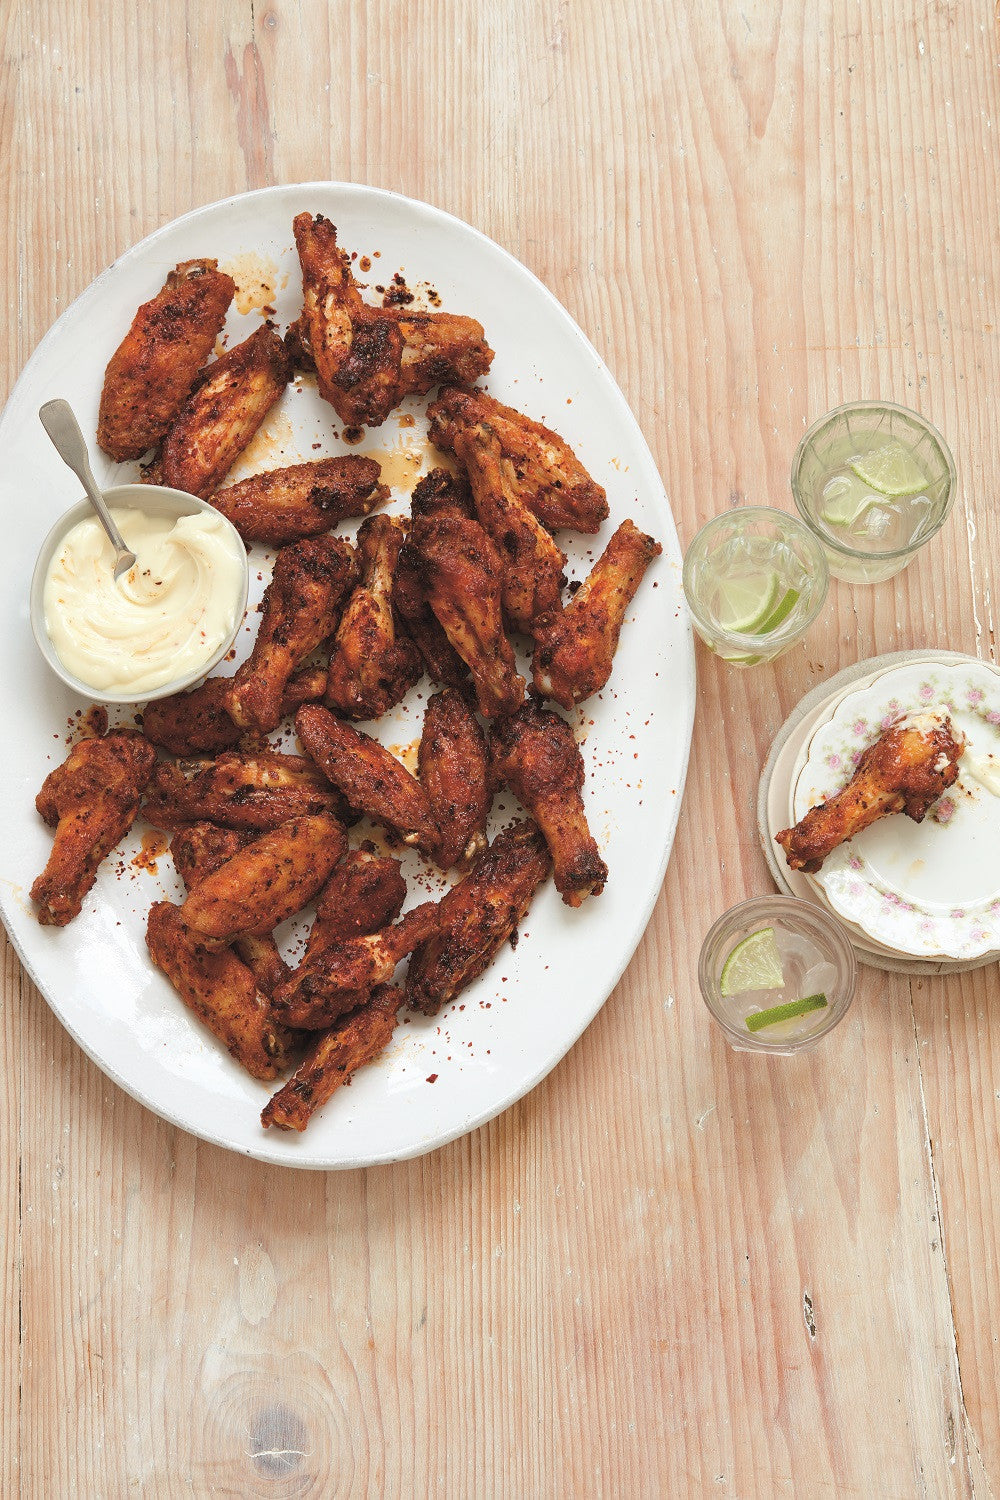 Crispy Baked Chicken Wings with Aleppo Pepper by Emma Spitzer